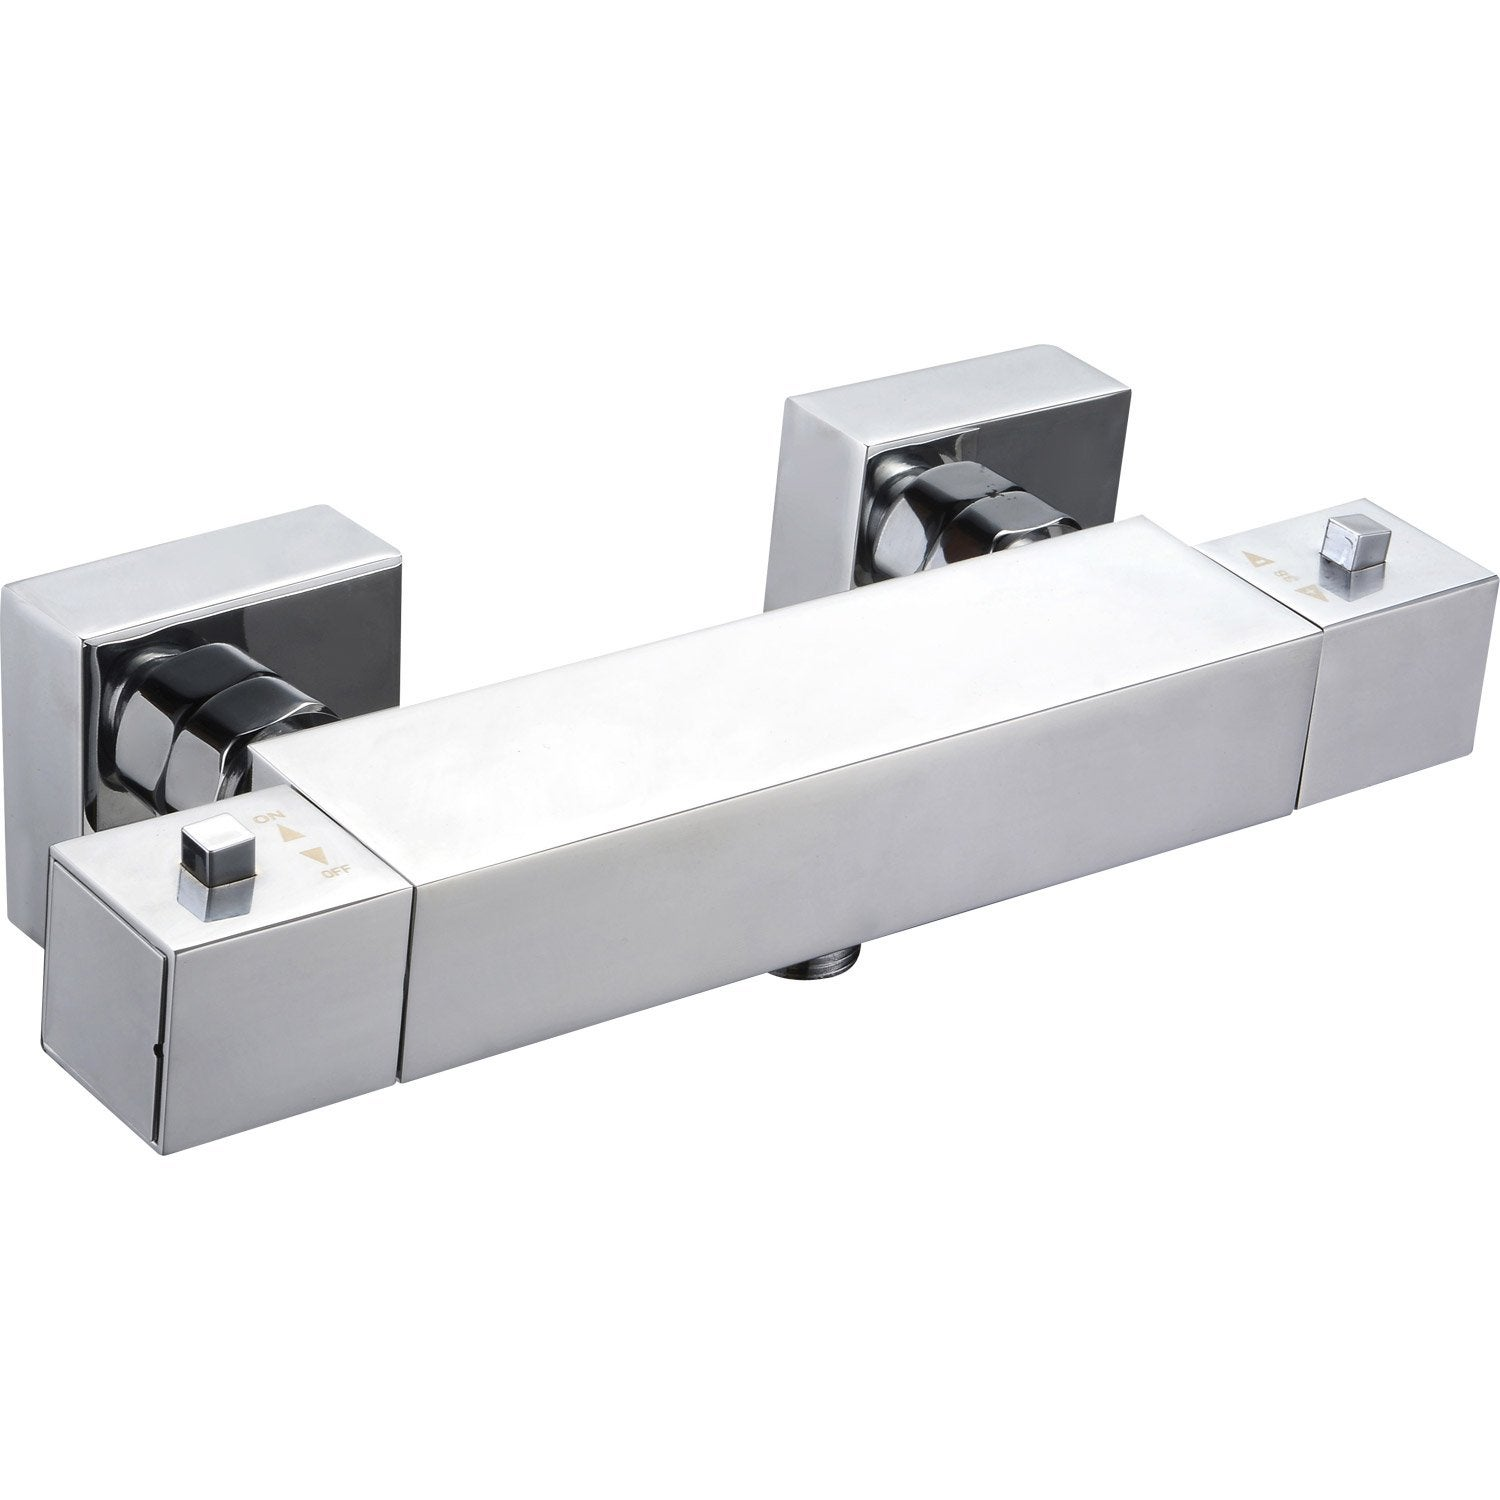 Mitigeur thermostatique de douche chrom sensea luka - Leroy merlin mitigeur bain douche ...